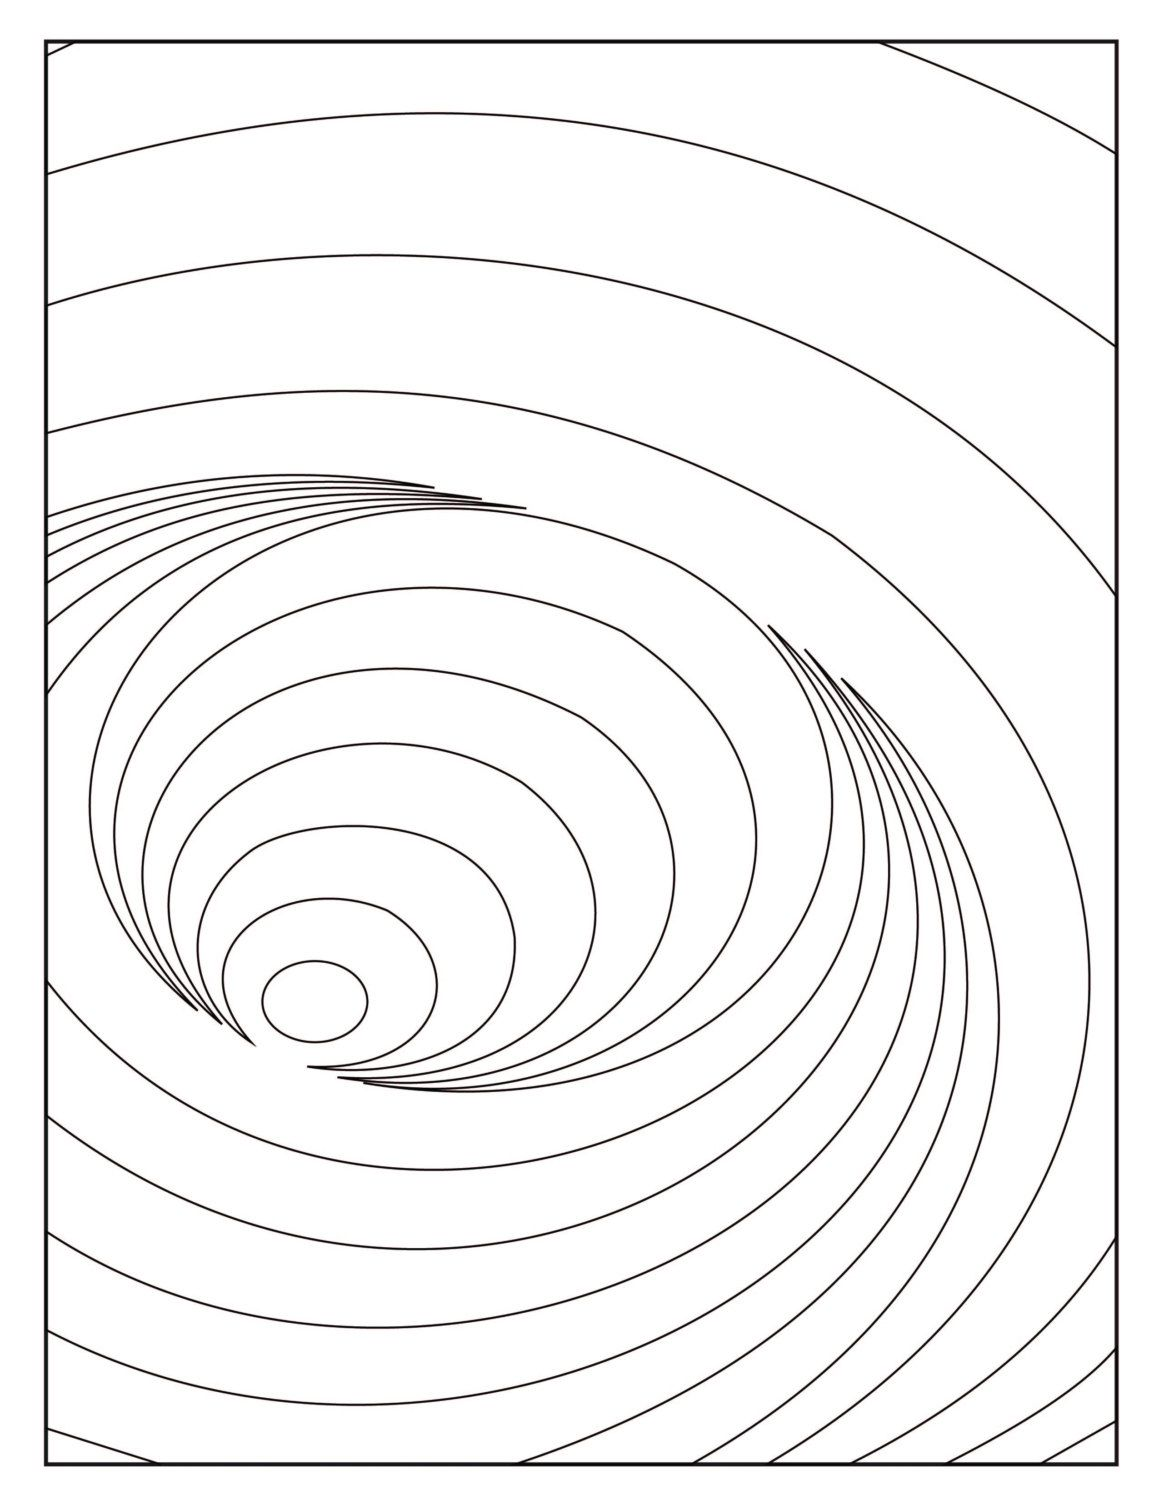 Digital Optical Illusion 4 Coloring Page By Graphicsbyshenessa